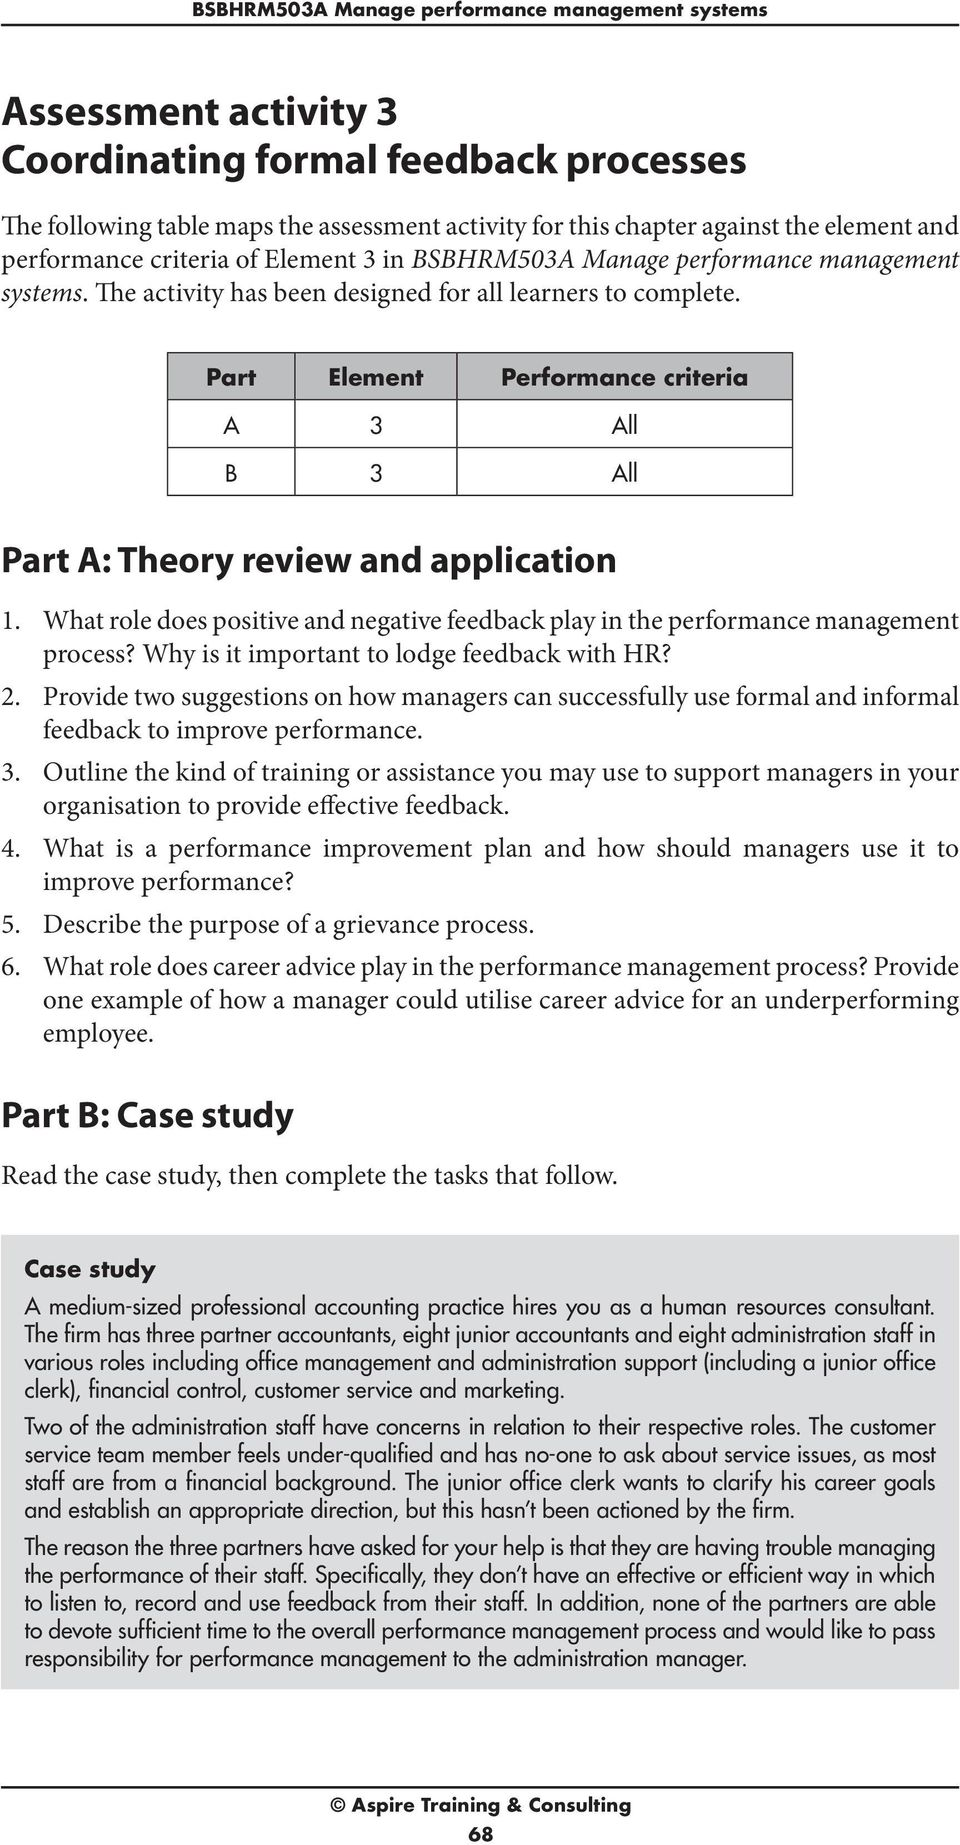 Part Element Performance criteria A 3 All B 3 All Part A: Theory review and application 1. 2. 3. 4. 5. 6. What role does positive and negative feedback play in the performance management process?